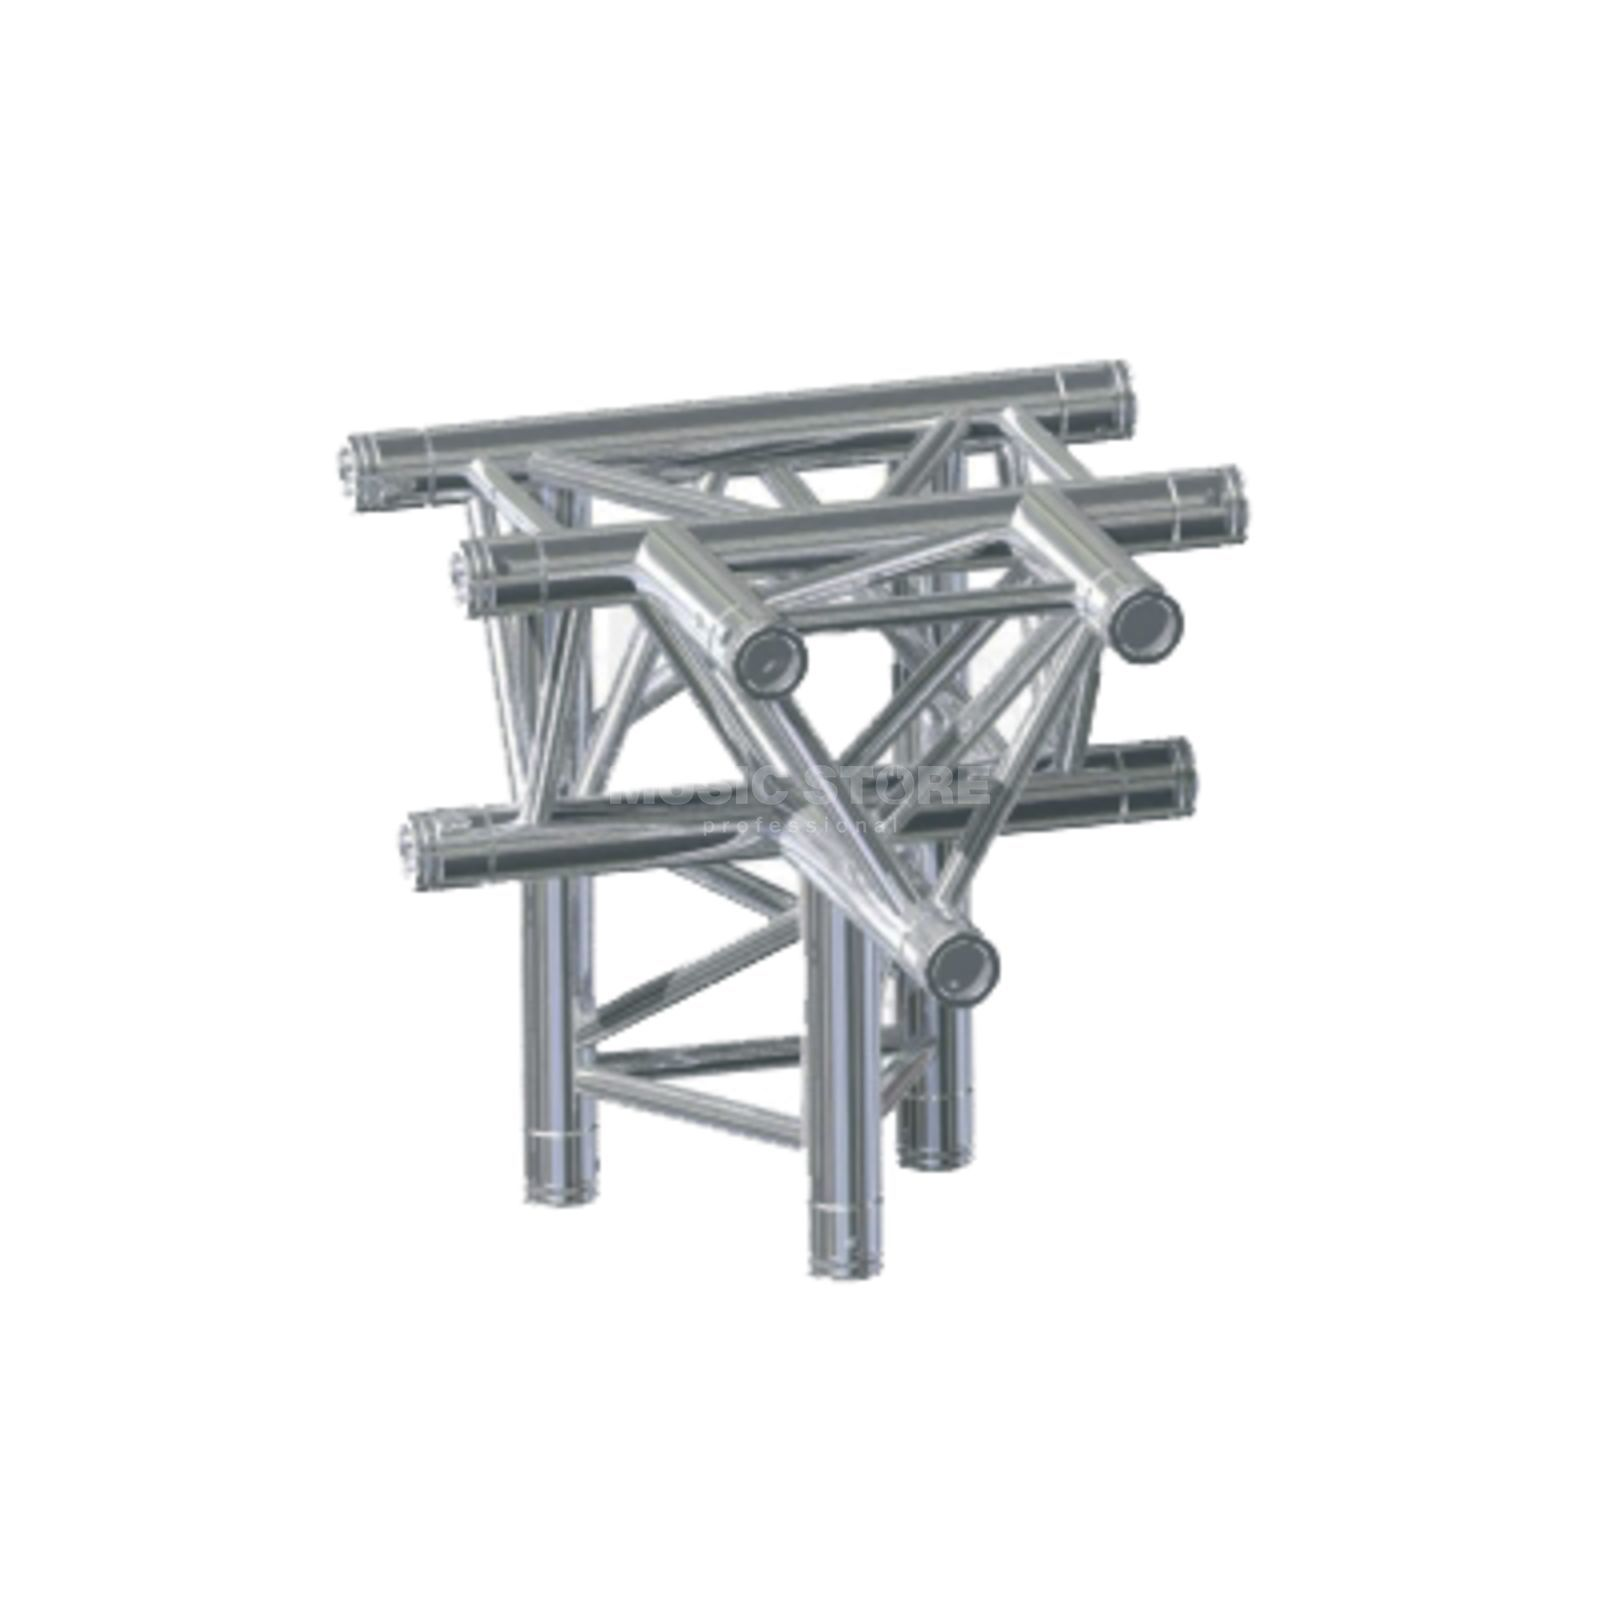 Global Truss F33 TD-T-Piece T42 3-Ppoint 4-Way Produktbillede